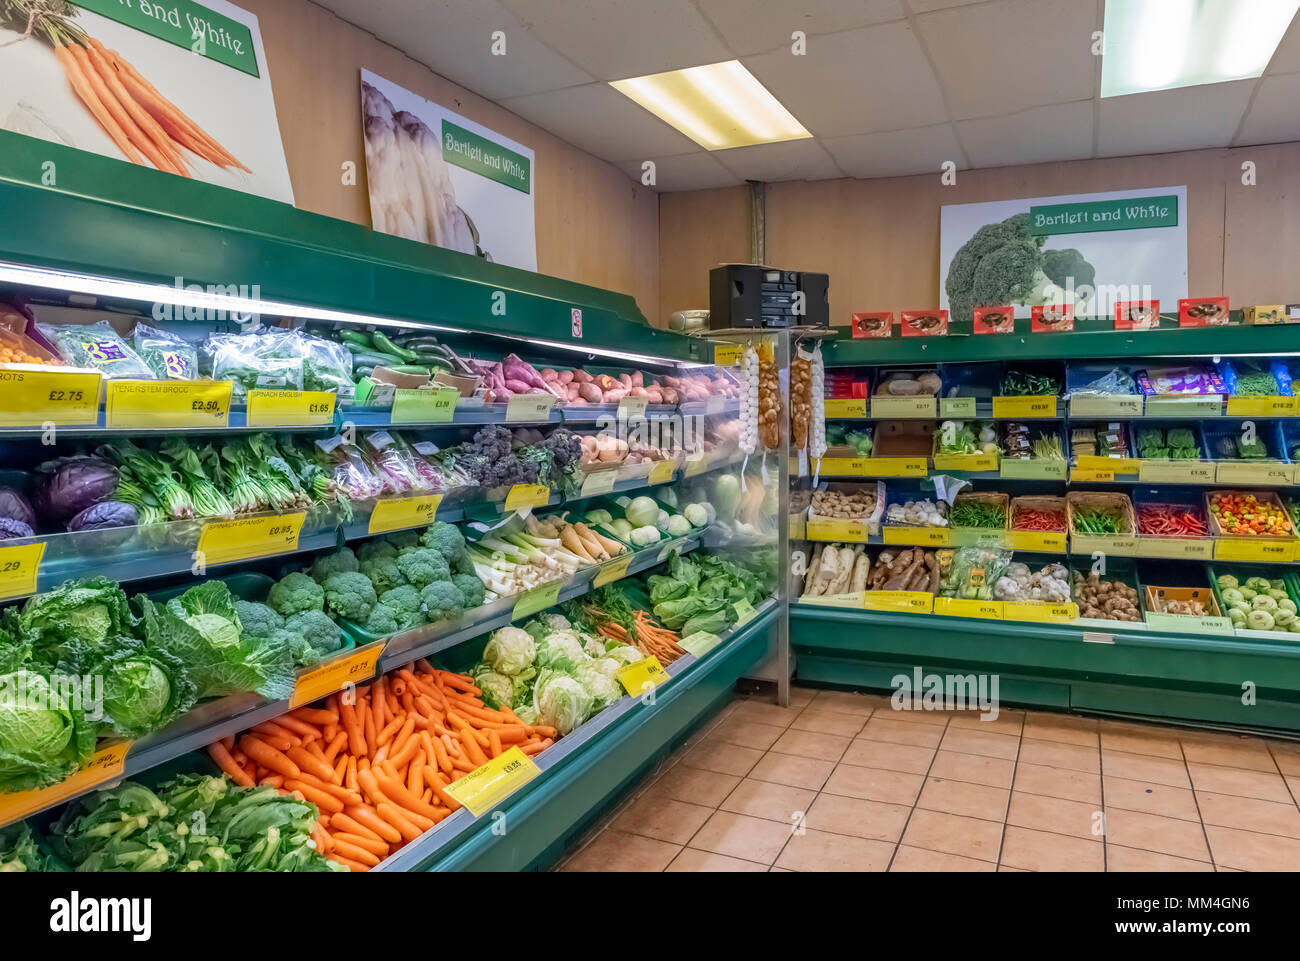 Grand display of fruit and vegetables, Bartlett and white greengrocers Ramsgate Stock Photo